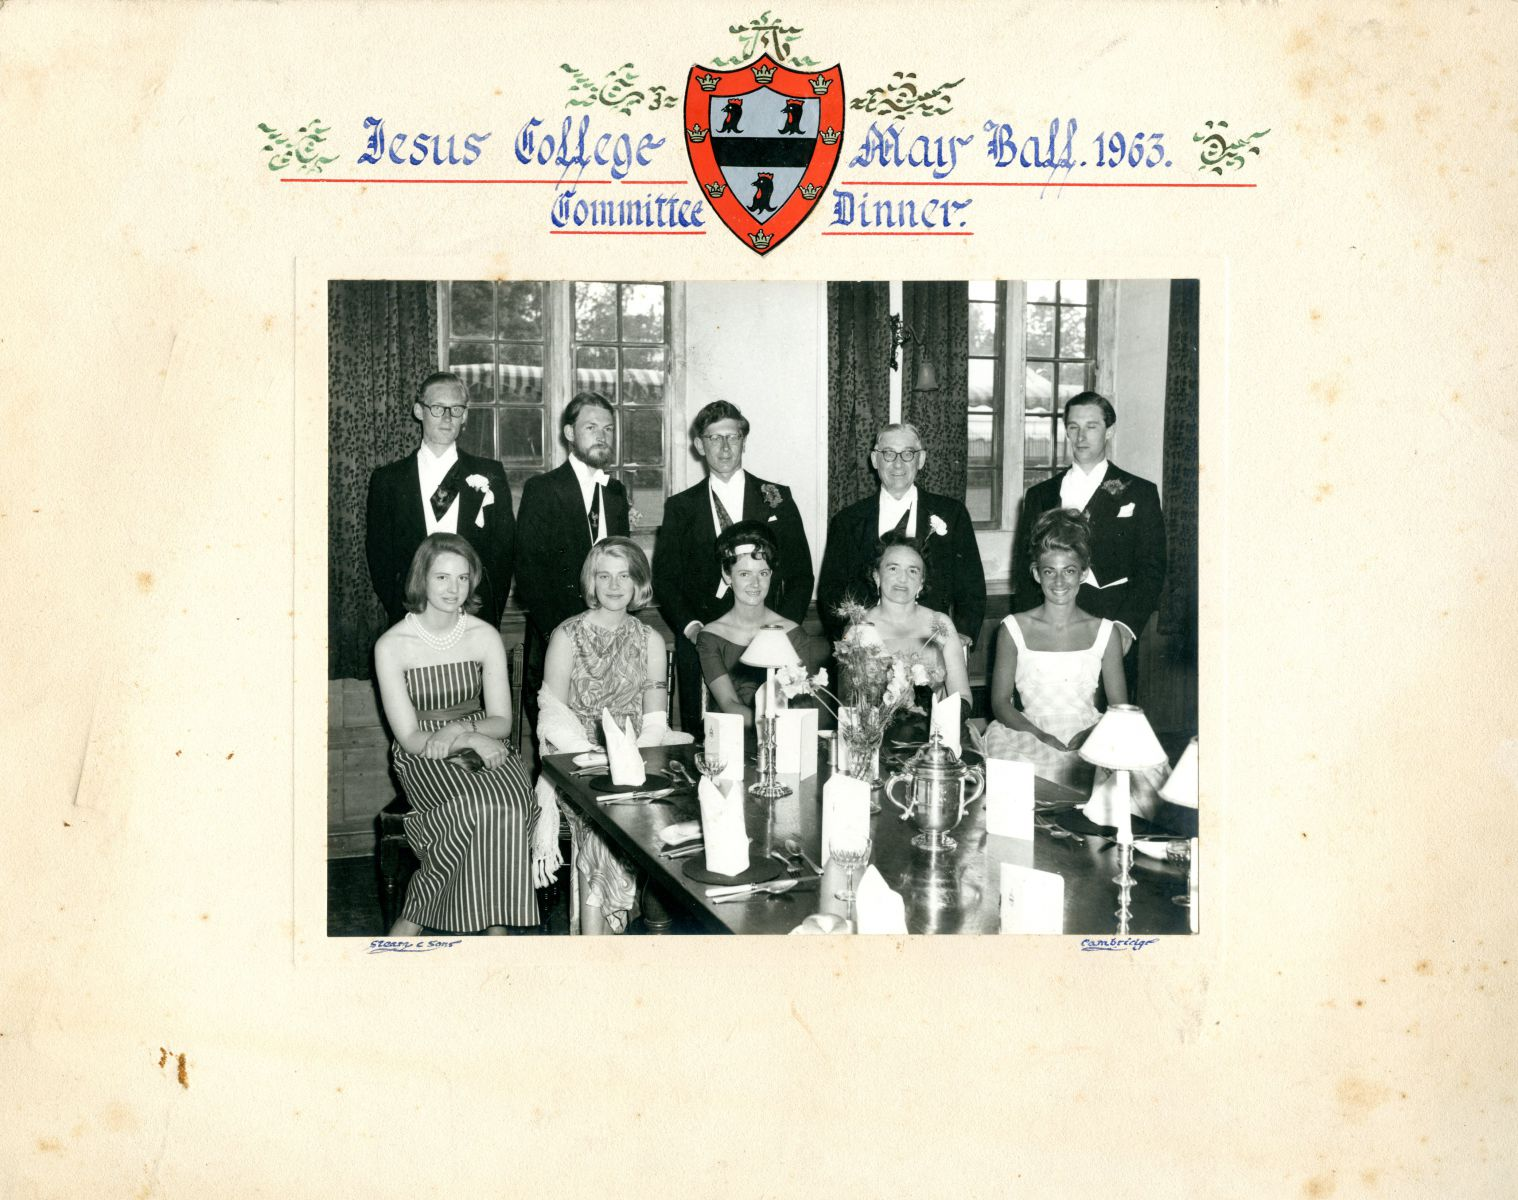 May Ball Committee dinner 1963